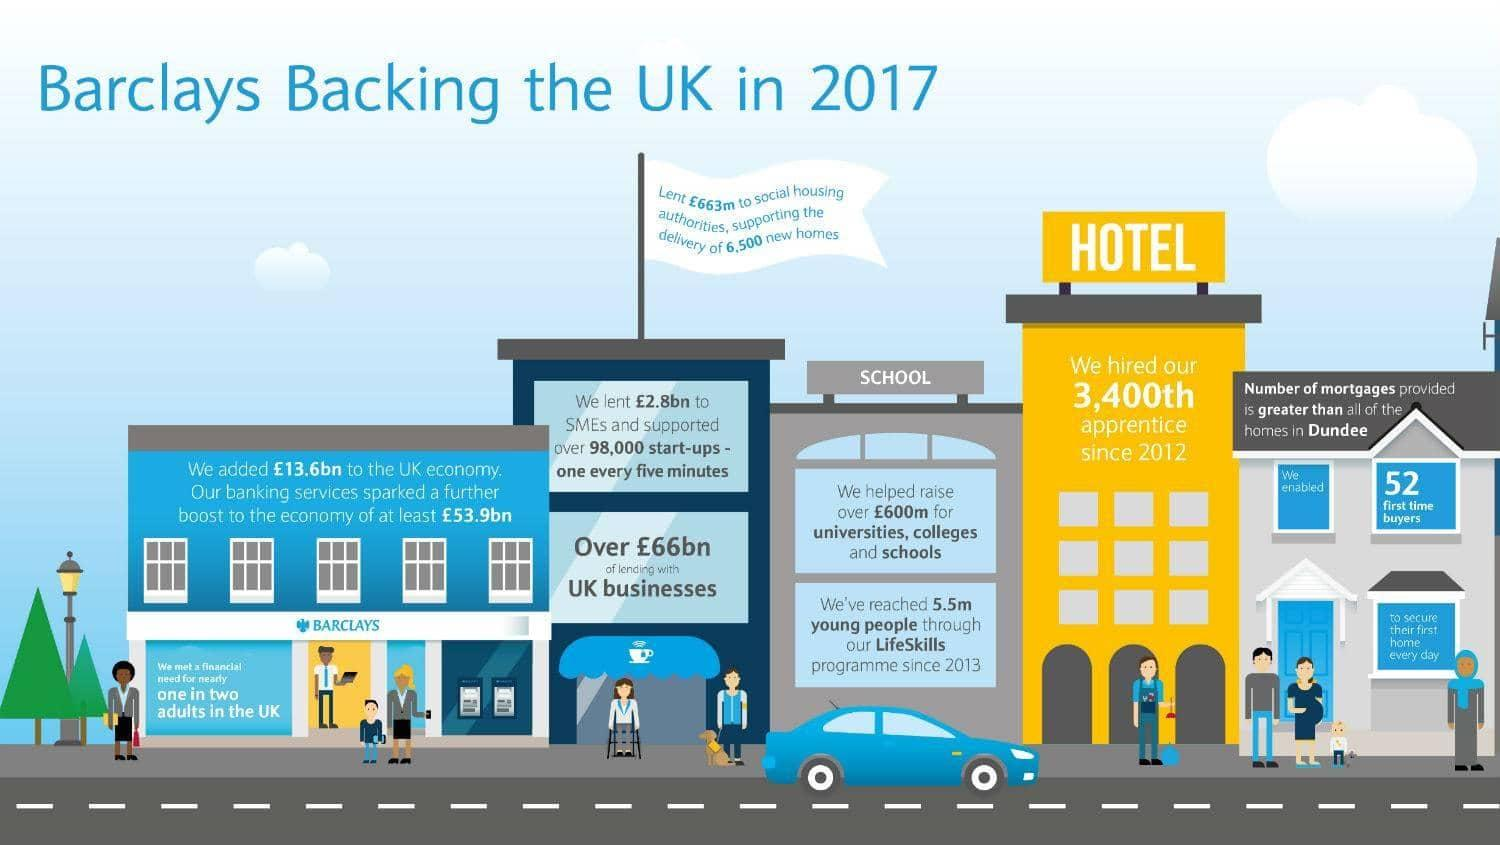 Barclays Backing the UK 2017 inforgraphic